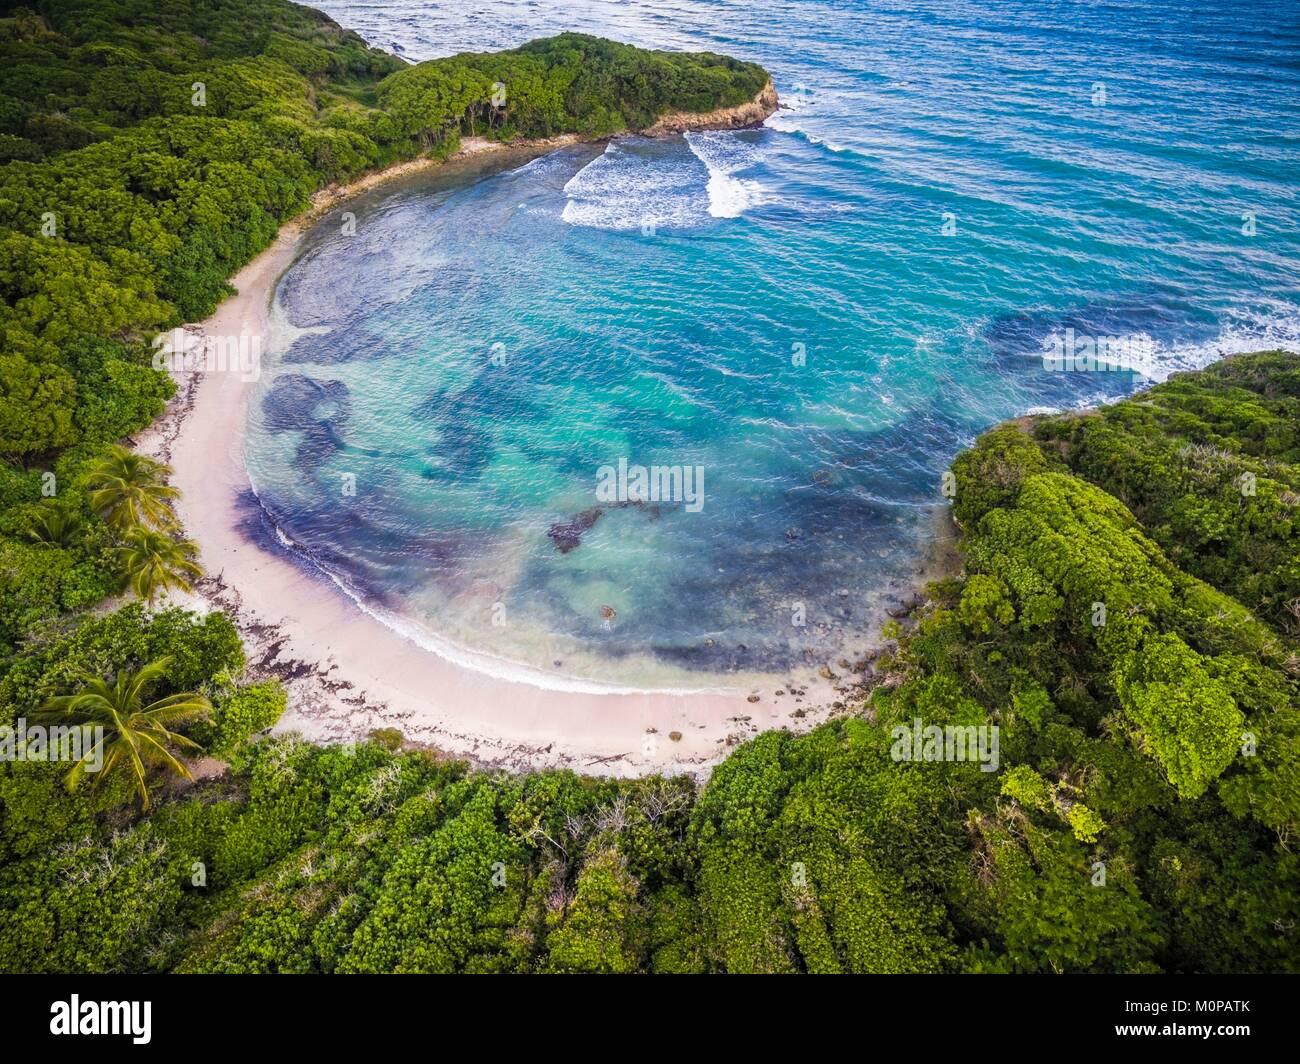 France,Caribbean,Lesser Antilles,Guadeloupe,Grande-Terre,Le Gosier,aerial view on the beach of Anse à Jacques - Stock Image